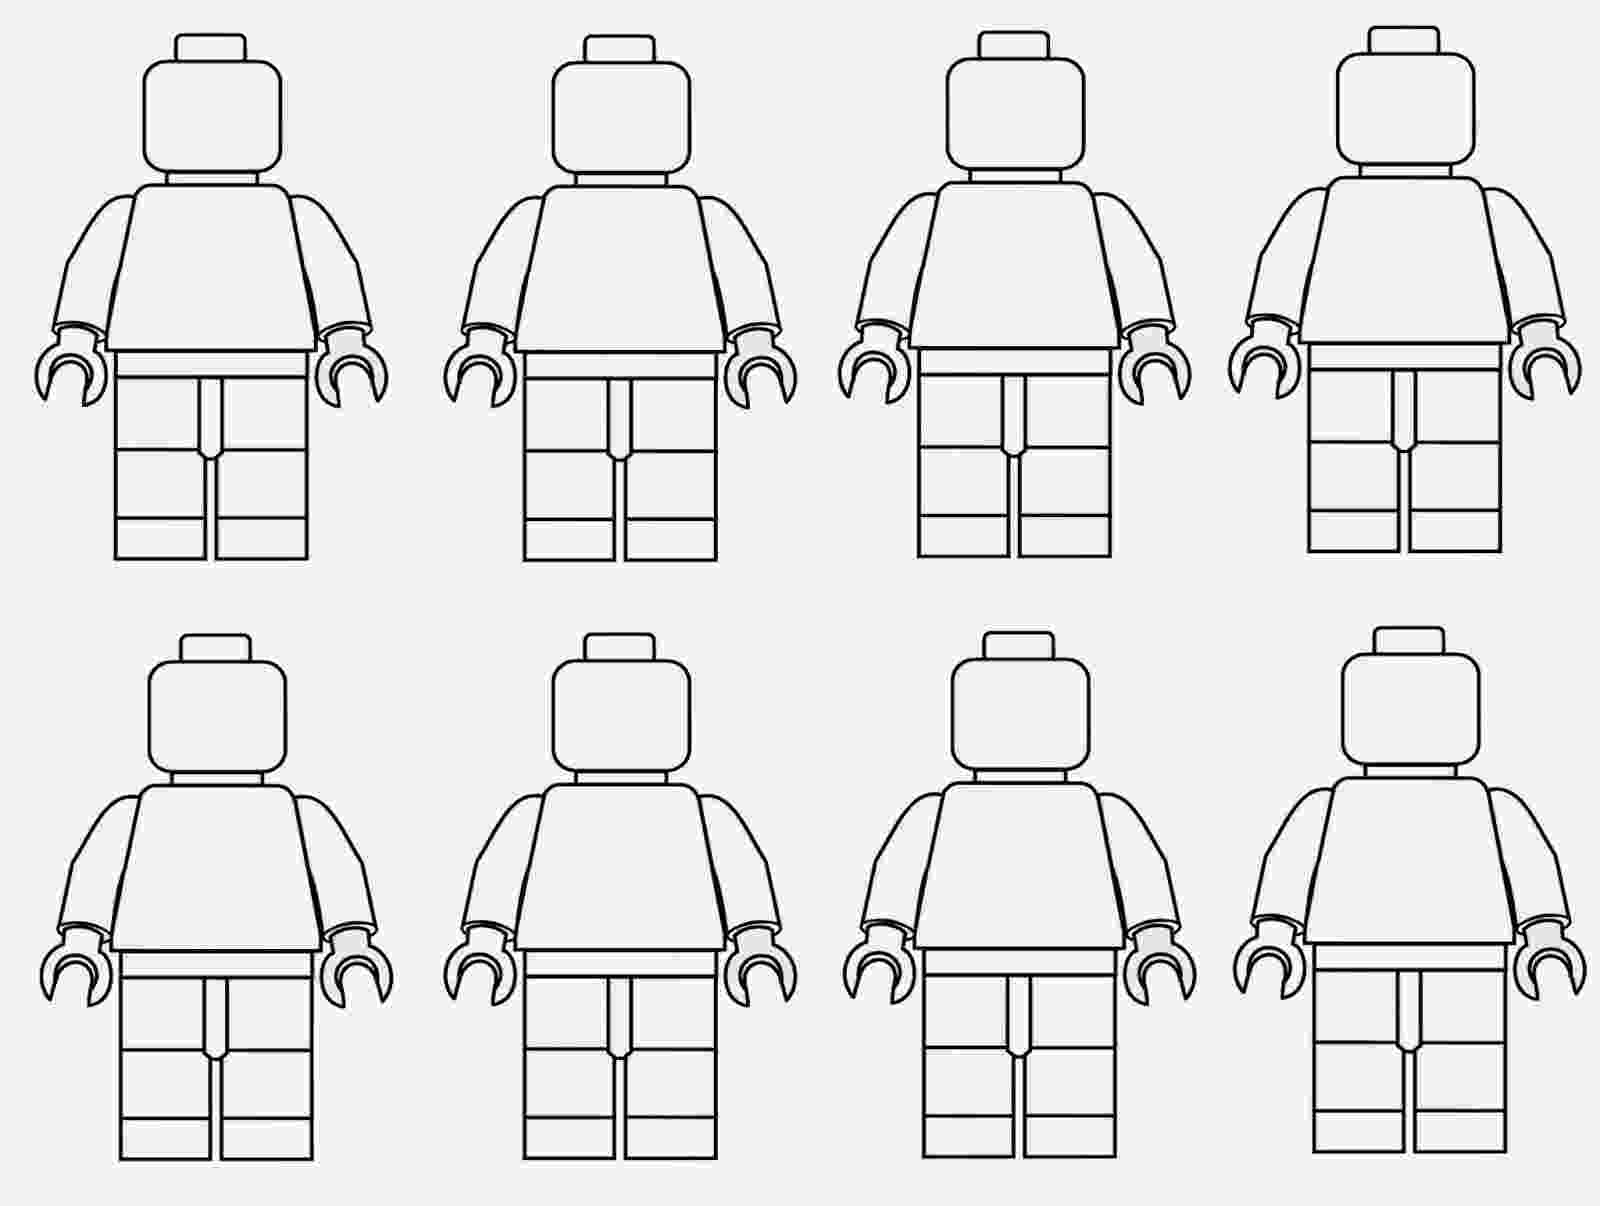 lego pages to color spring time treats lego men coloring page lego to color pages